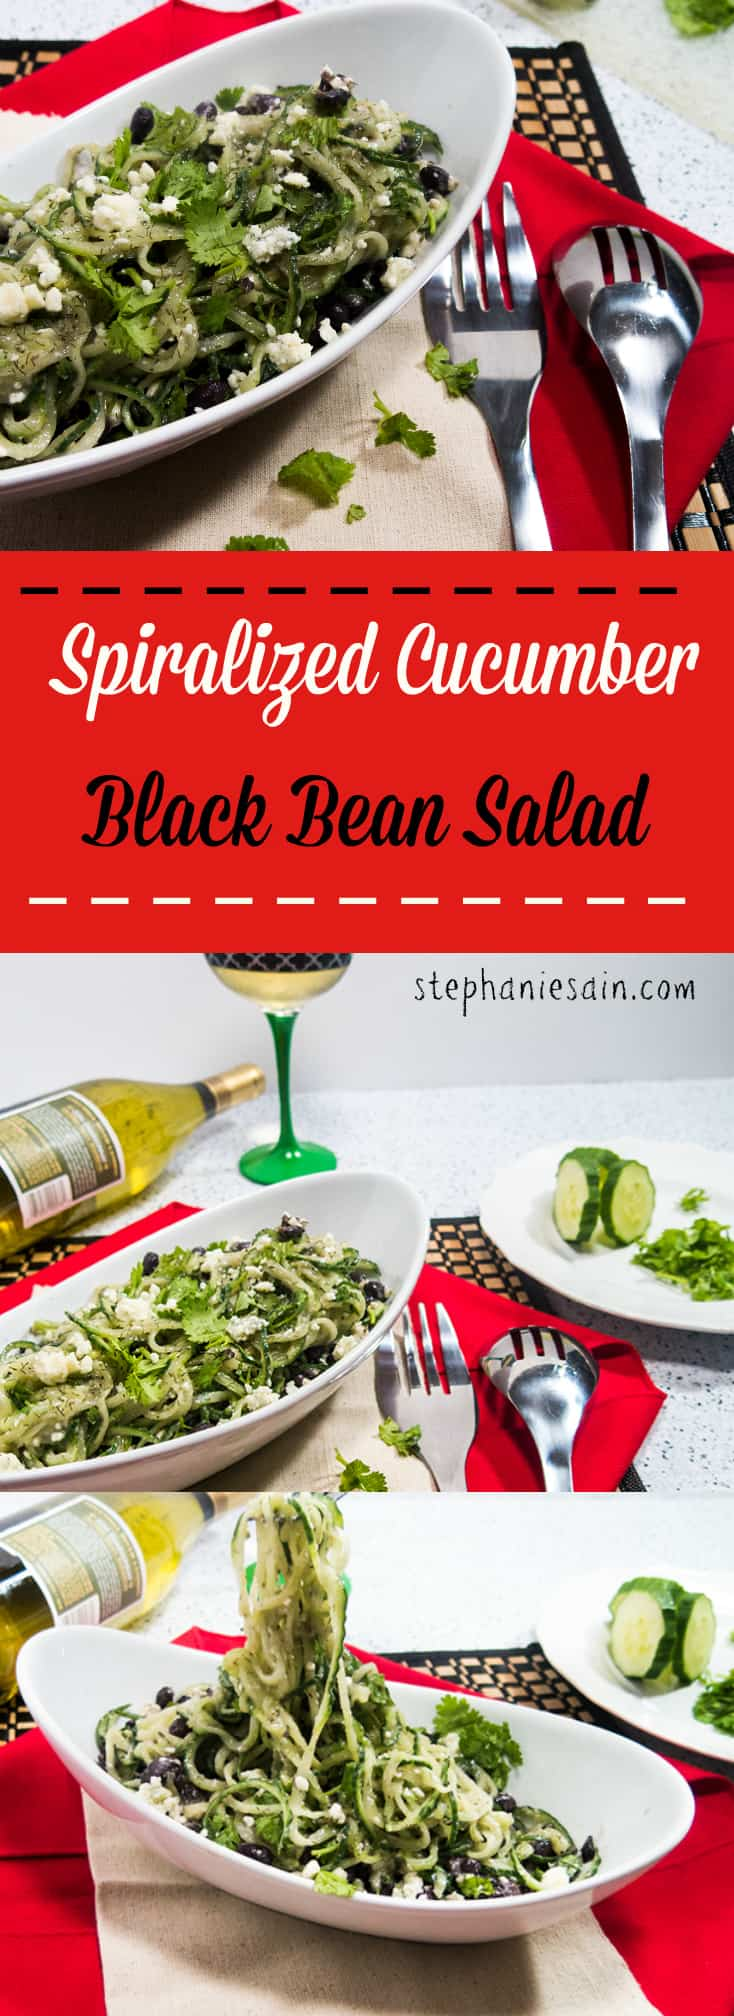 Spiralized Cucumber Black Bean Salad is a healthy, tasty, dinner that can be prepared in under ten minutes. Vegetarian, Gluten Free.